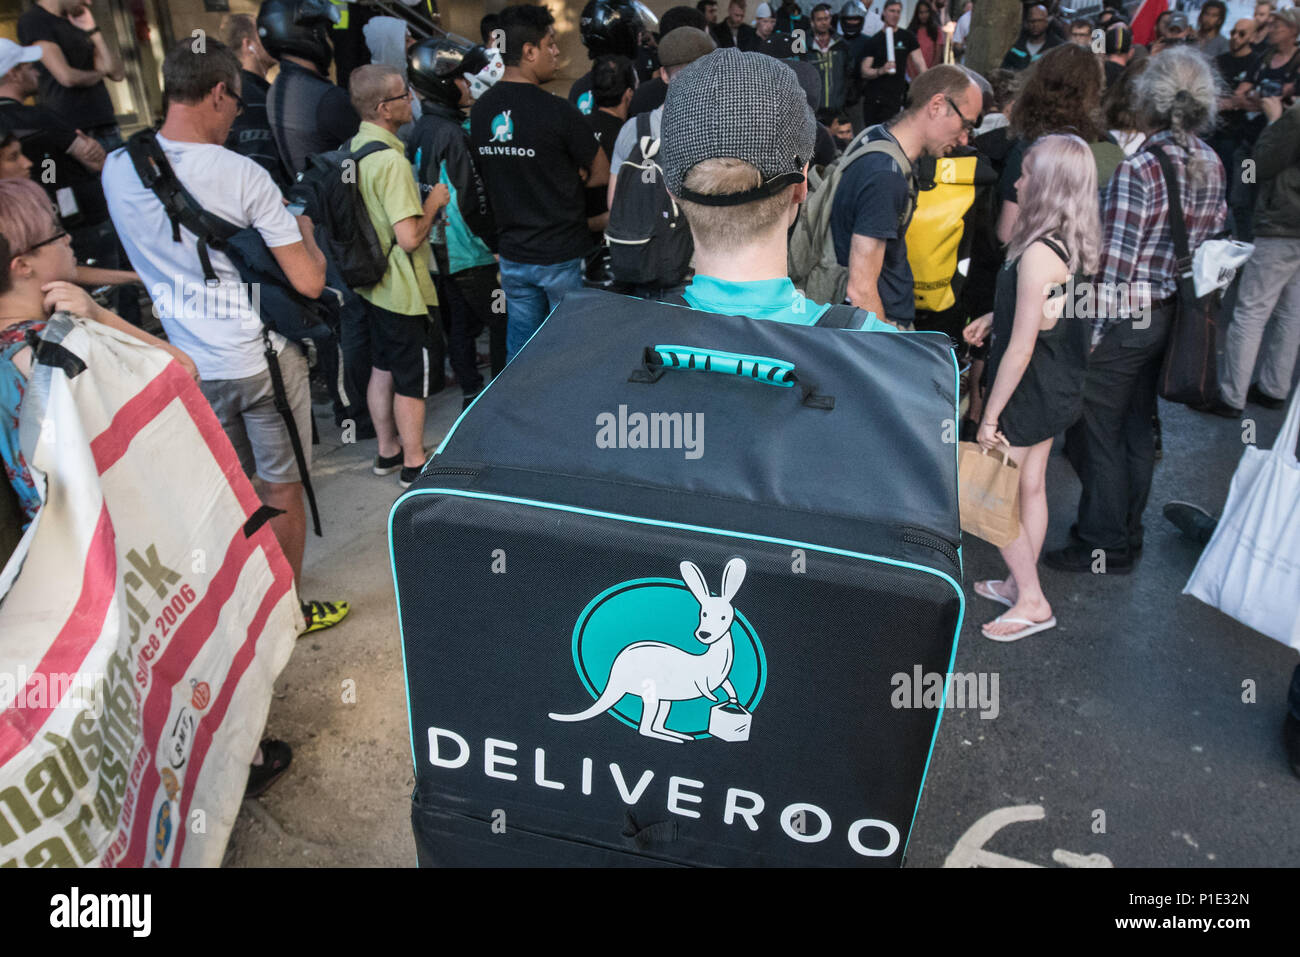 Torrington Place, London, August 12th 2016. Deliveroo is embroiled in a row over a new pay structure with its couriers as up to 100 workers and suppor - Stock Image